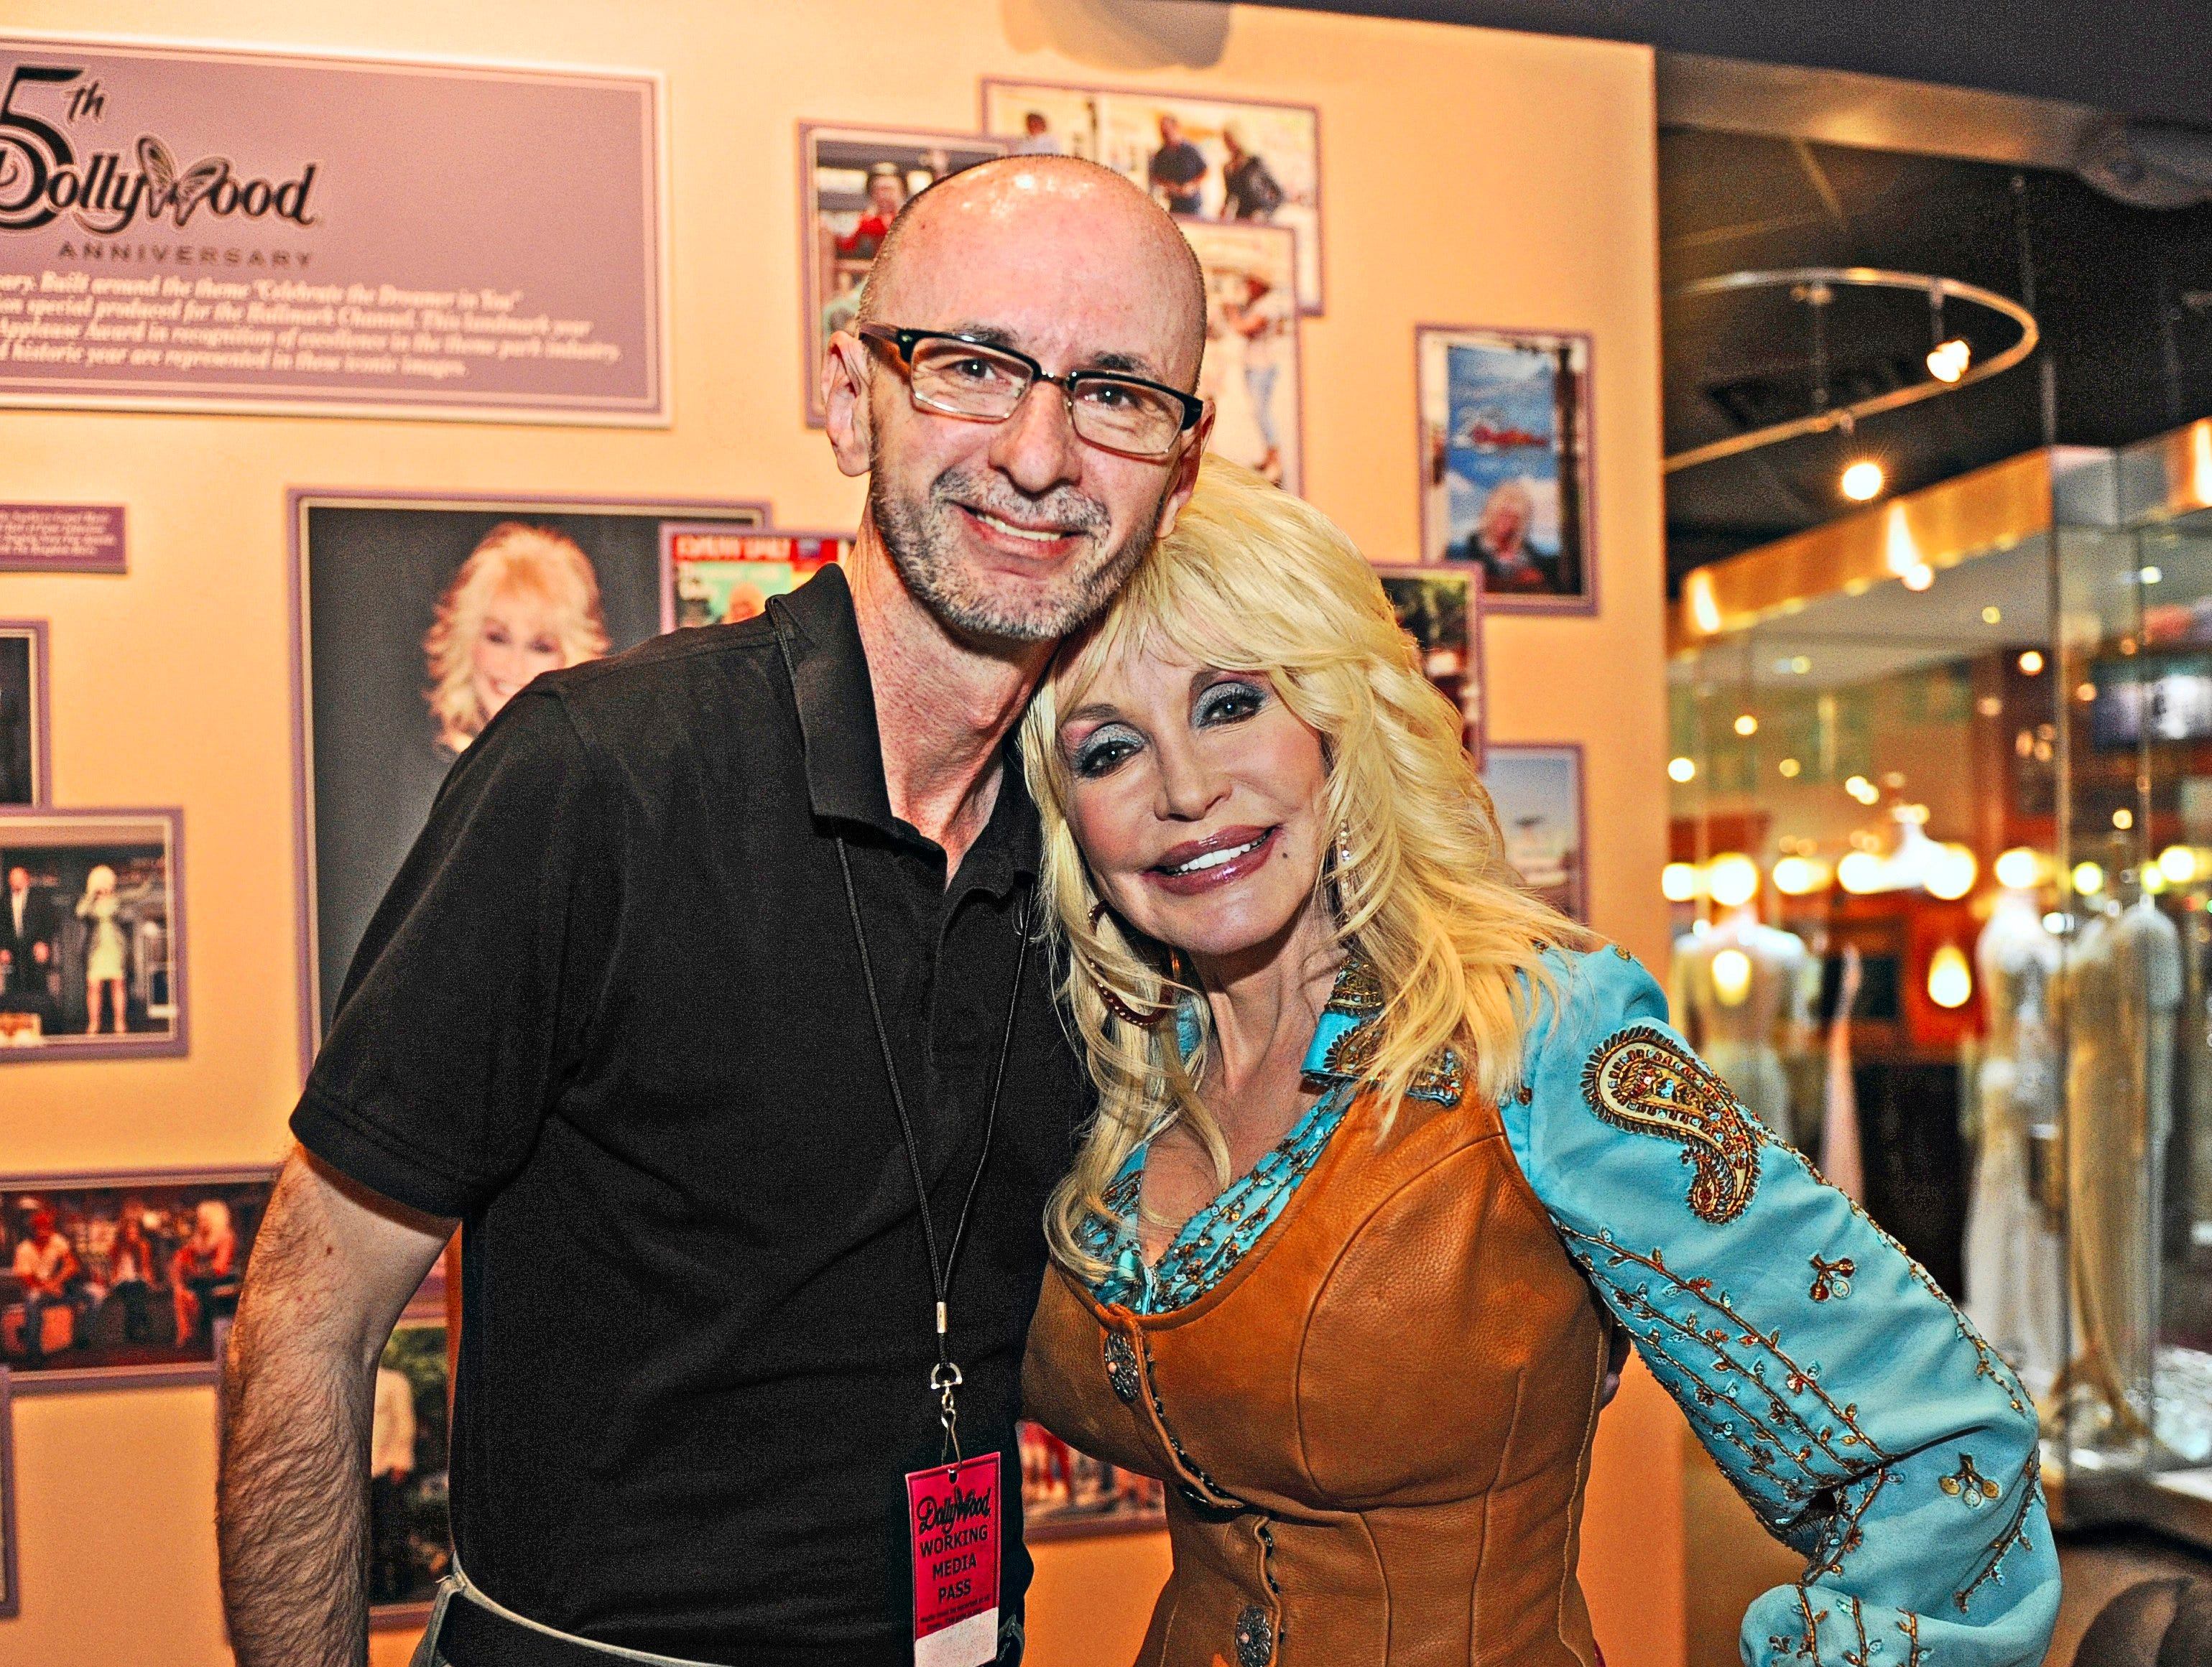 Dolly Parton poses with News Sentinel reporter Terry Morrow at Dollywood Friday, Mar. 23, 2012.